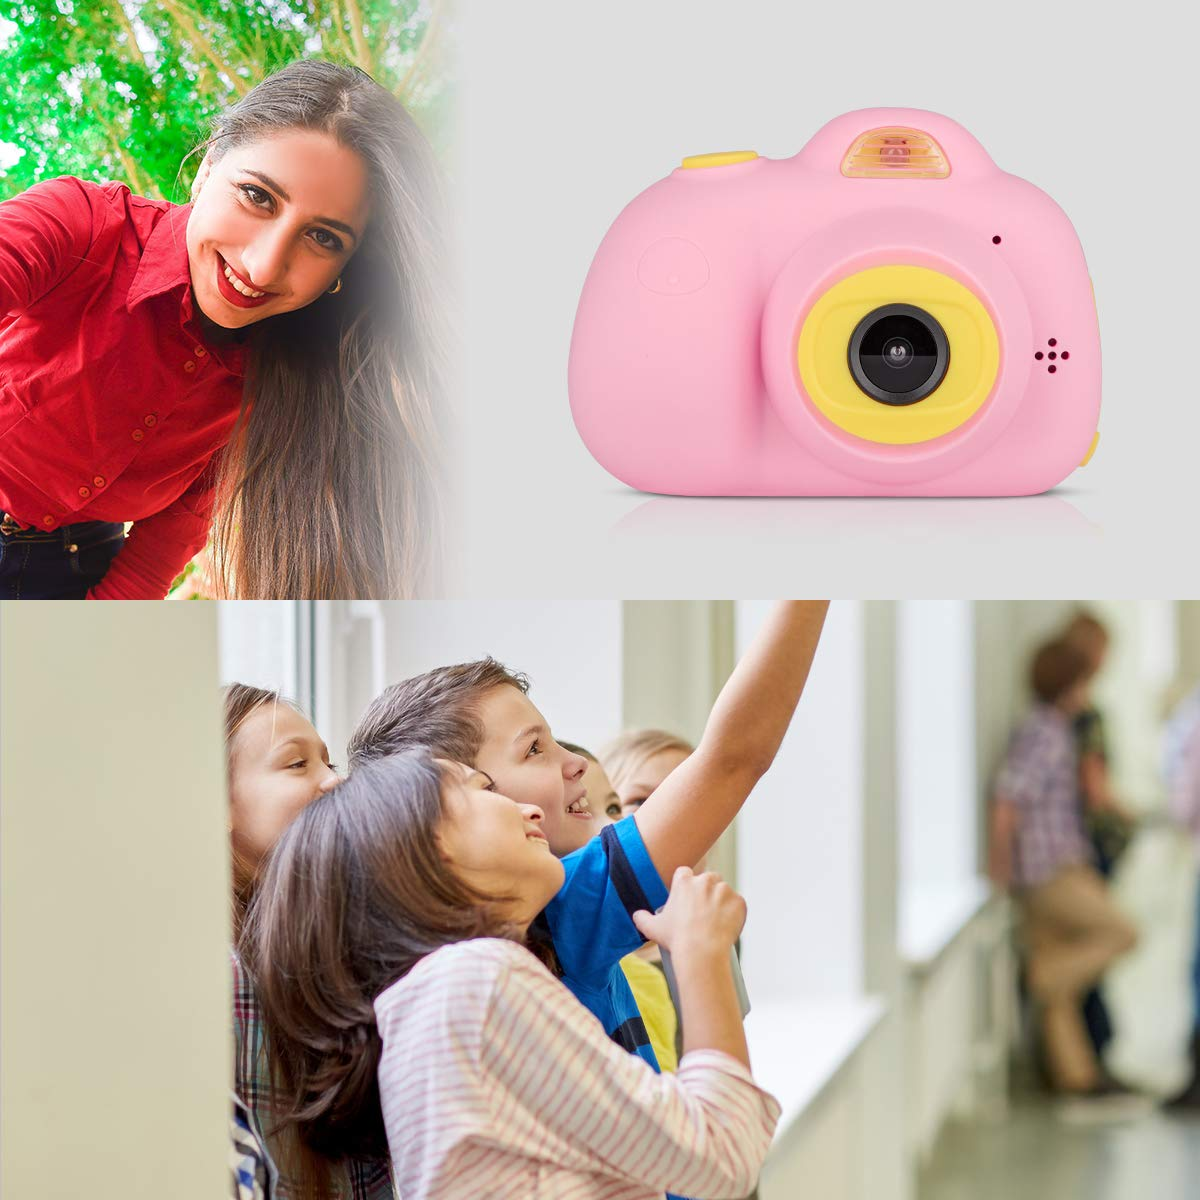 Funkprofi Kids Camera 1080P 8MP Front & Rear Camera Clear Digital Recorder Camcorder for Kids, Selfie Function, Funny Frames, Face Recognition, Support 32GB Memory Card, Best Gift for Boys and Girls by Funkprofi (Image #6)